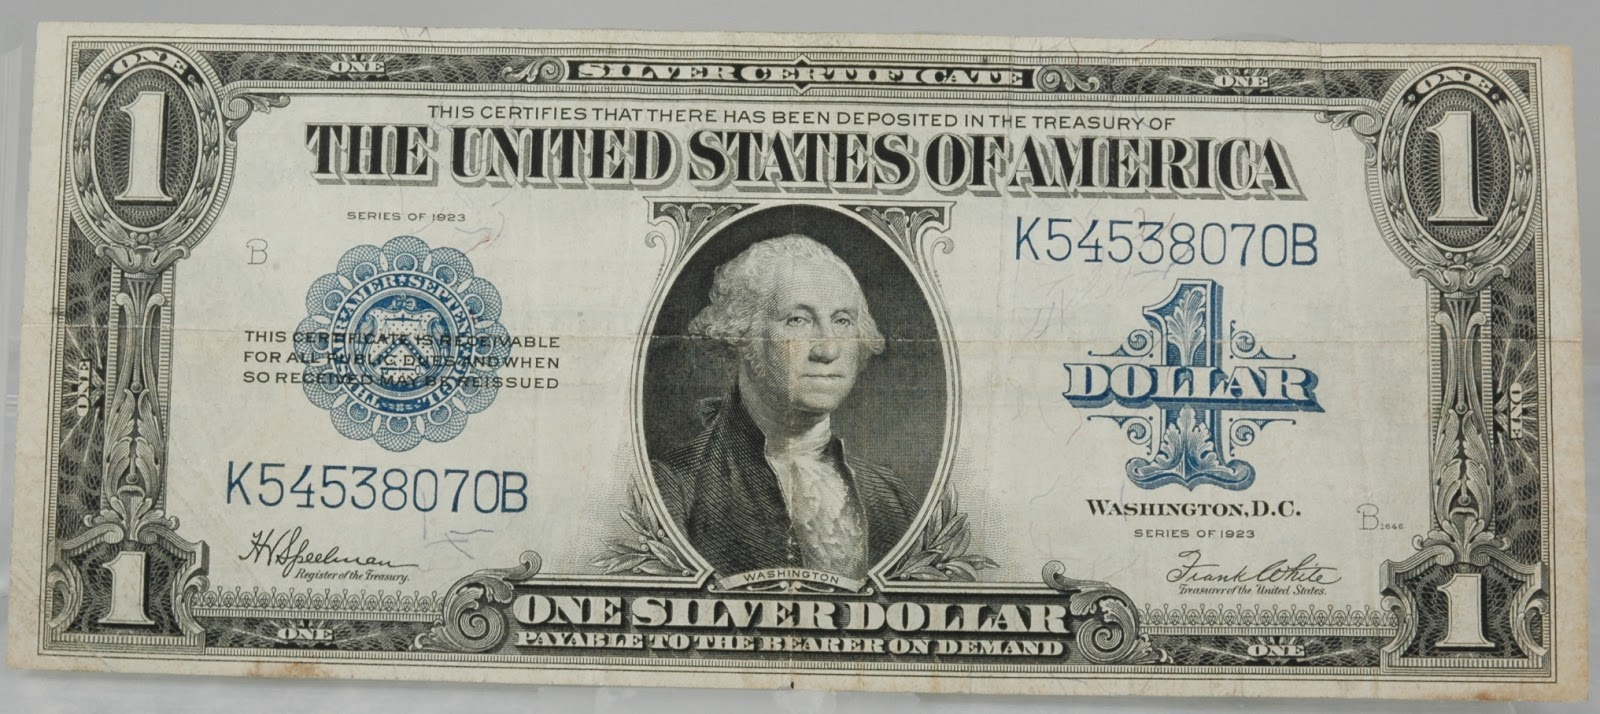 Silver Dollar Bill Value What Can We Use Oil For